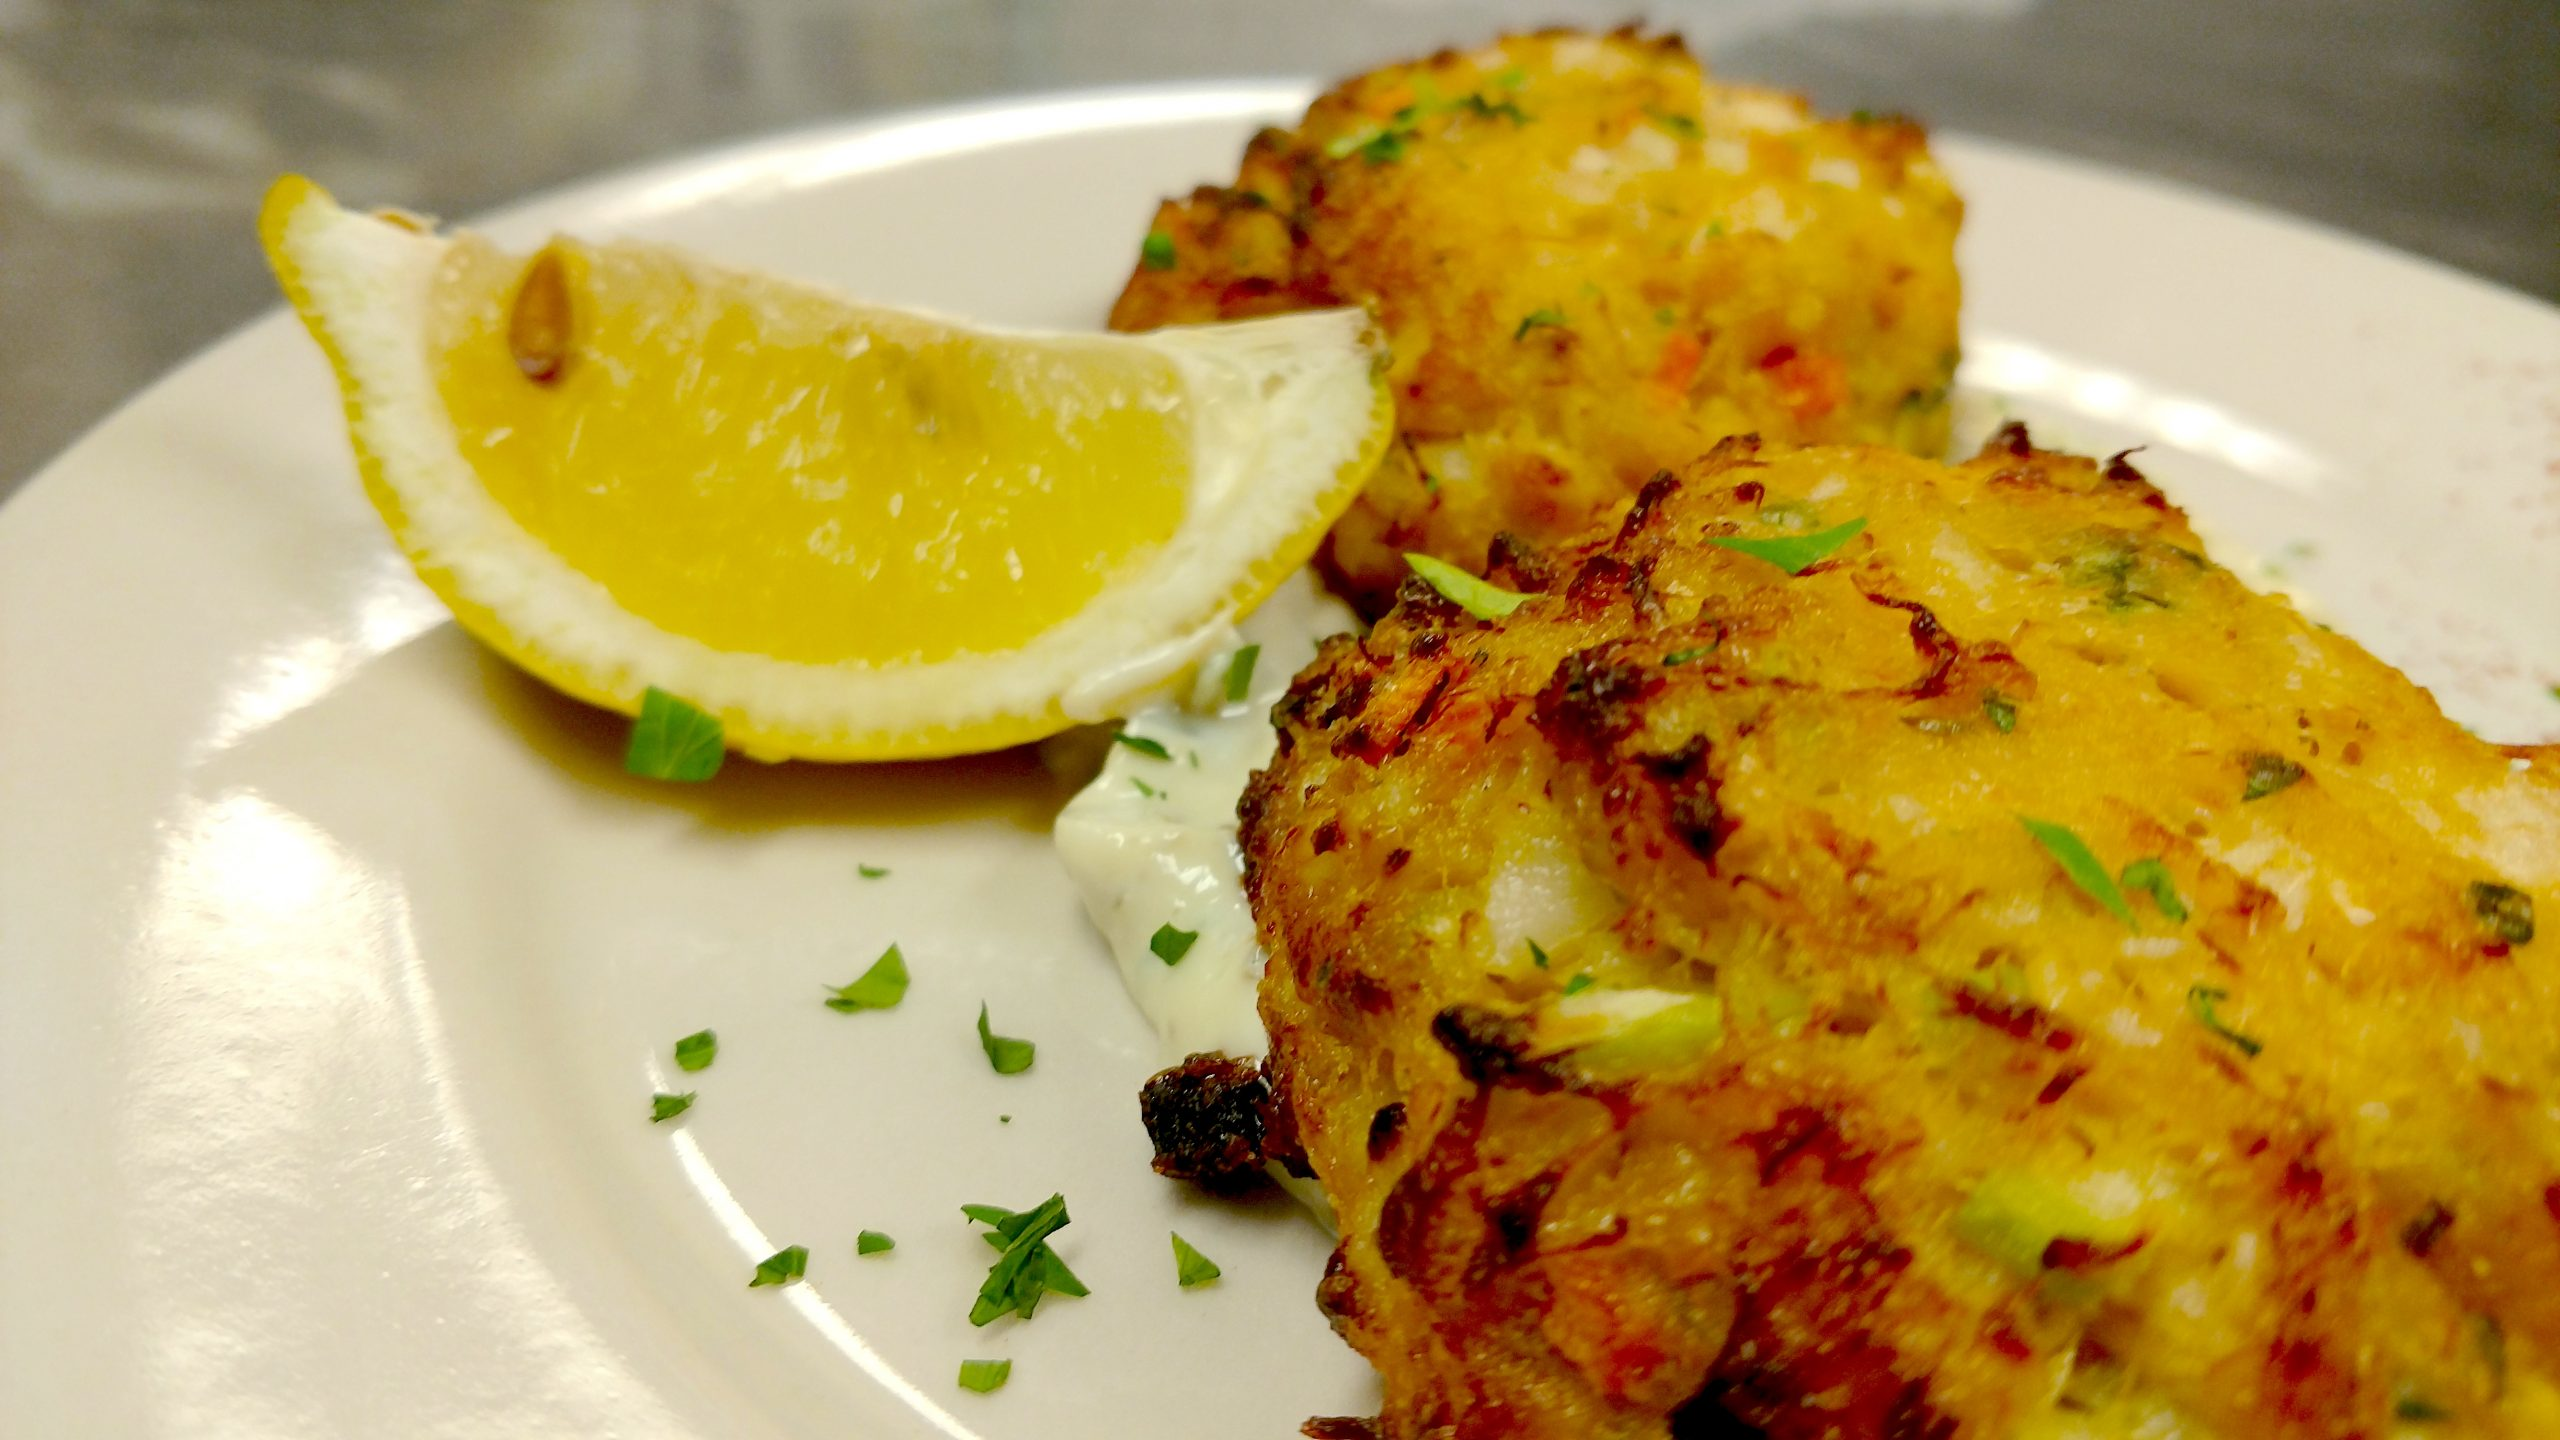 Jake and Telly's Specials - Crab Cakes. A Close up image of crab cakes on a white plate with a lemon wedge